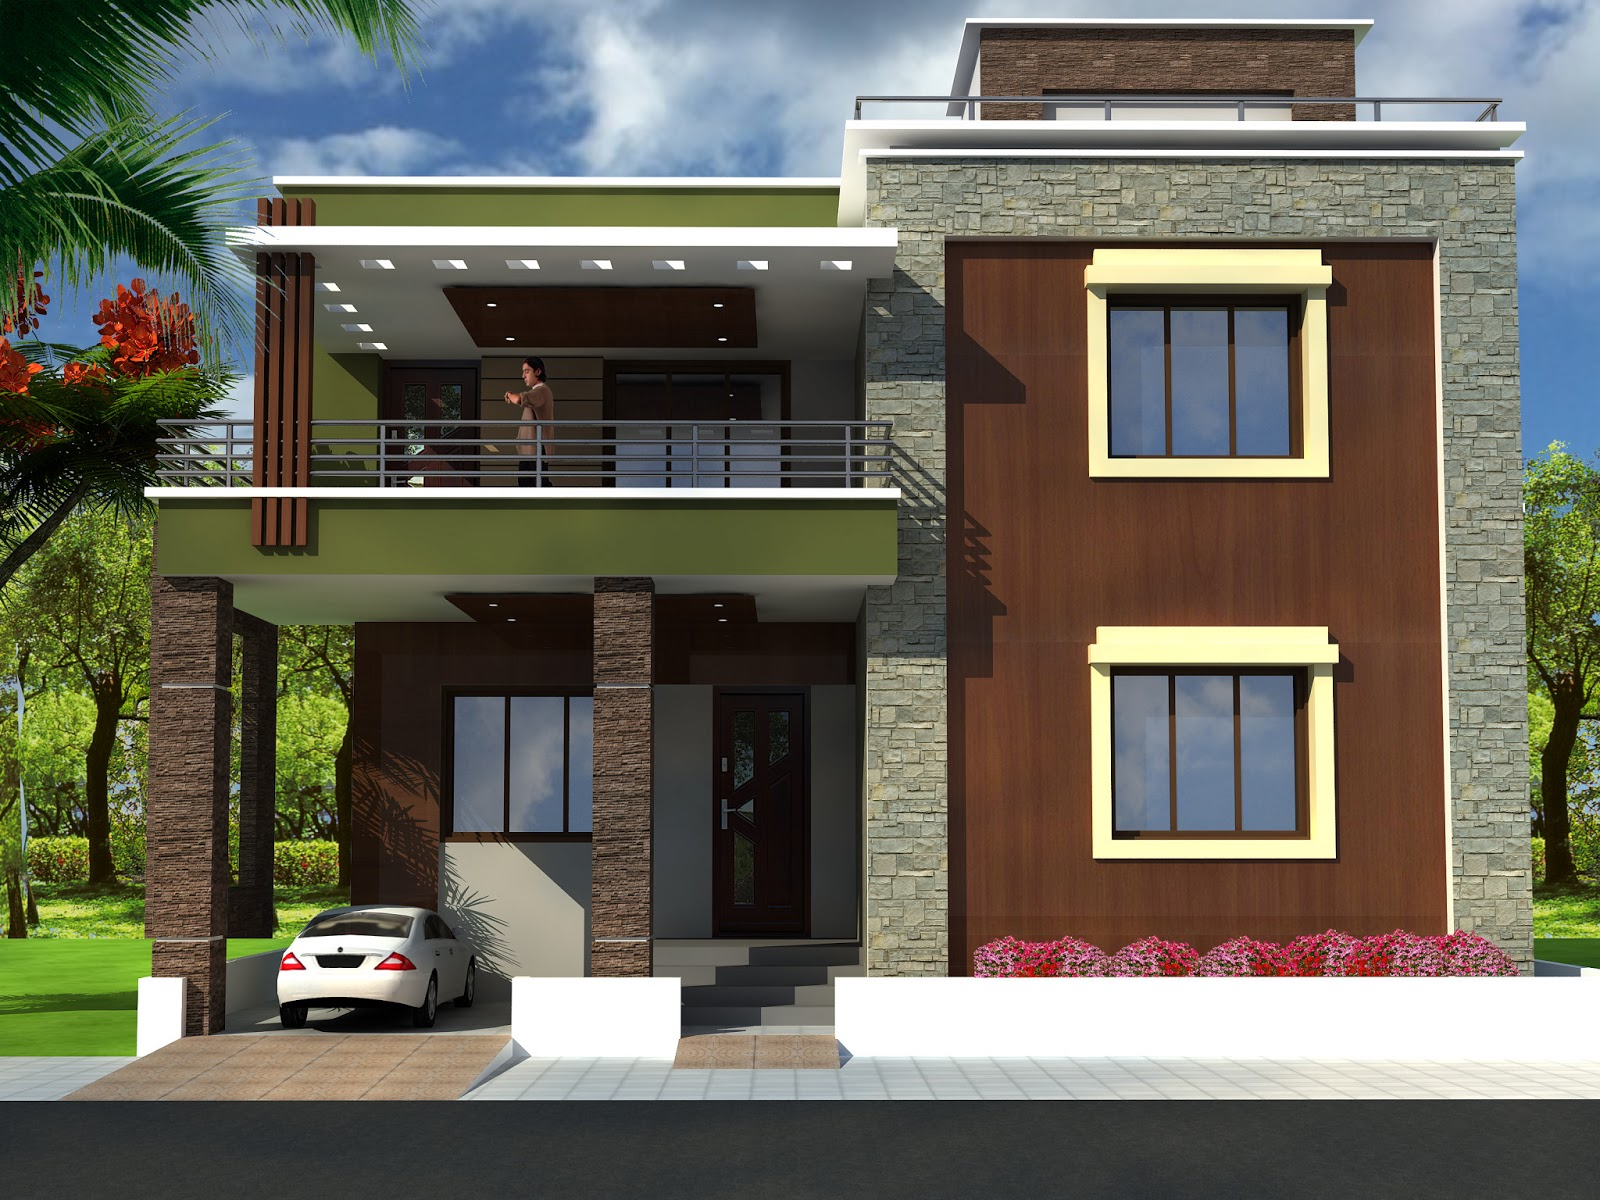 573w381 exterior house design front elevation on house design front elevation blueprint - Front Home Design